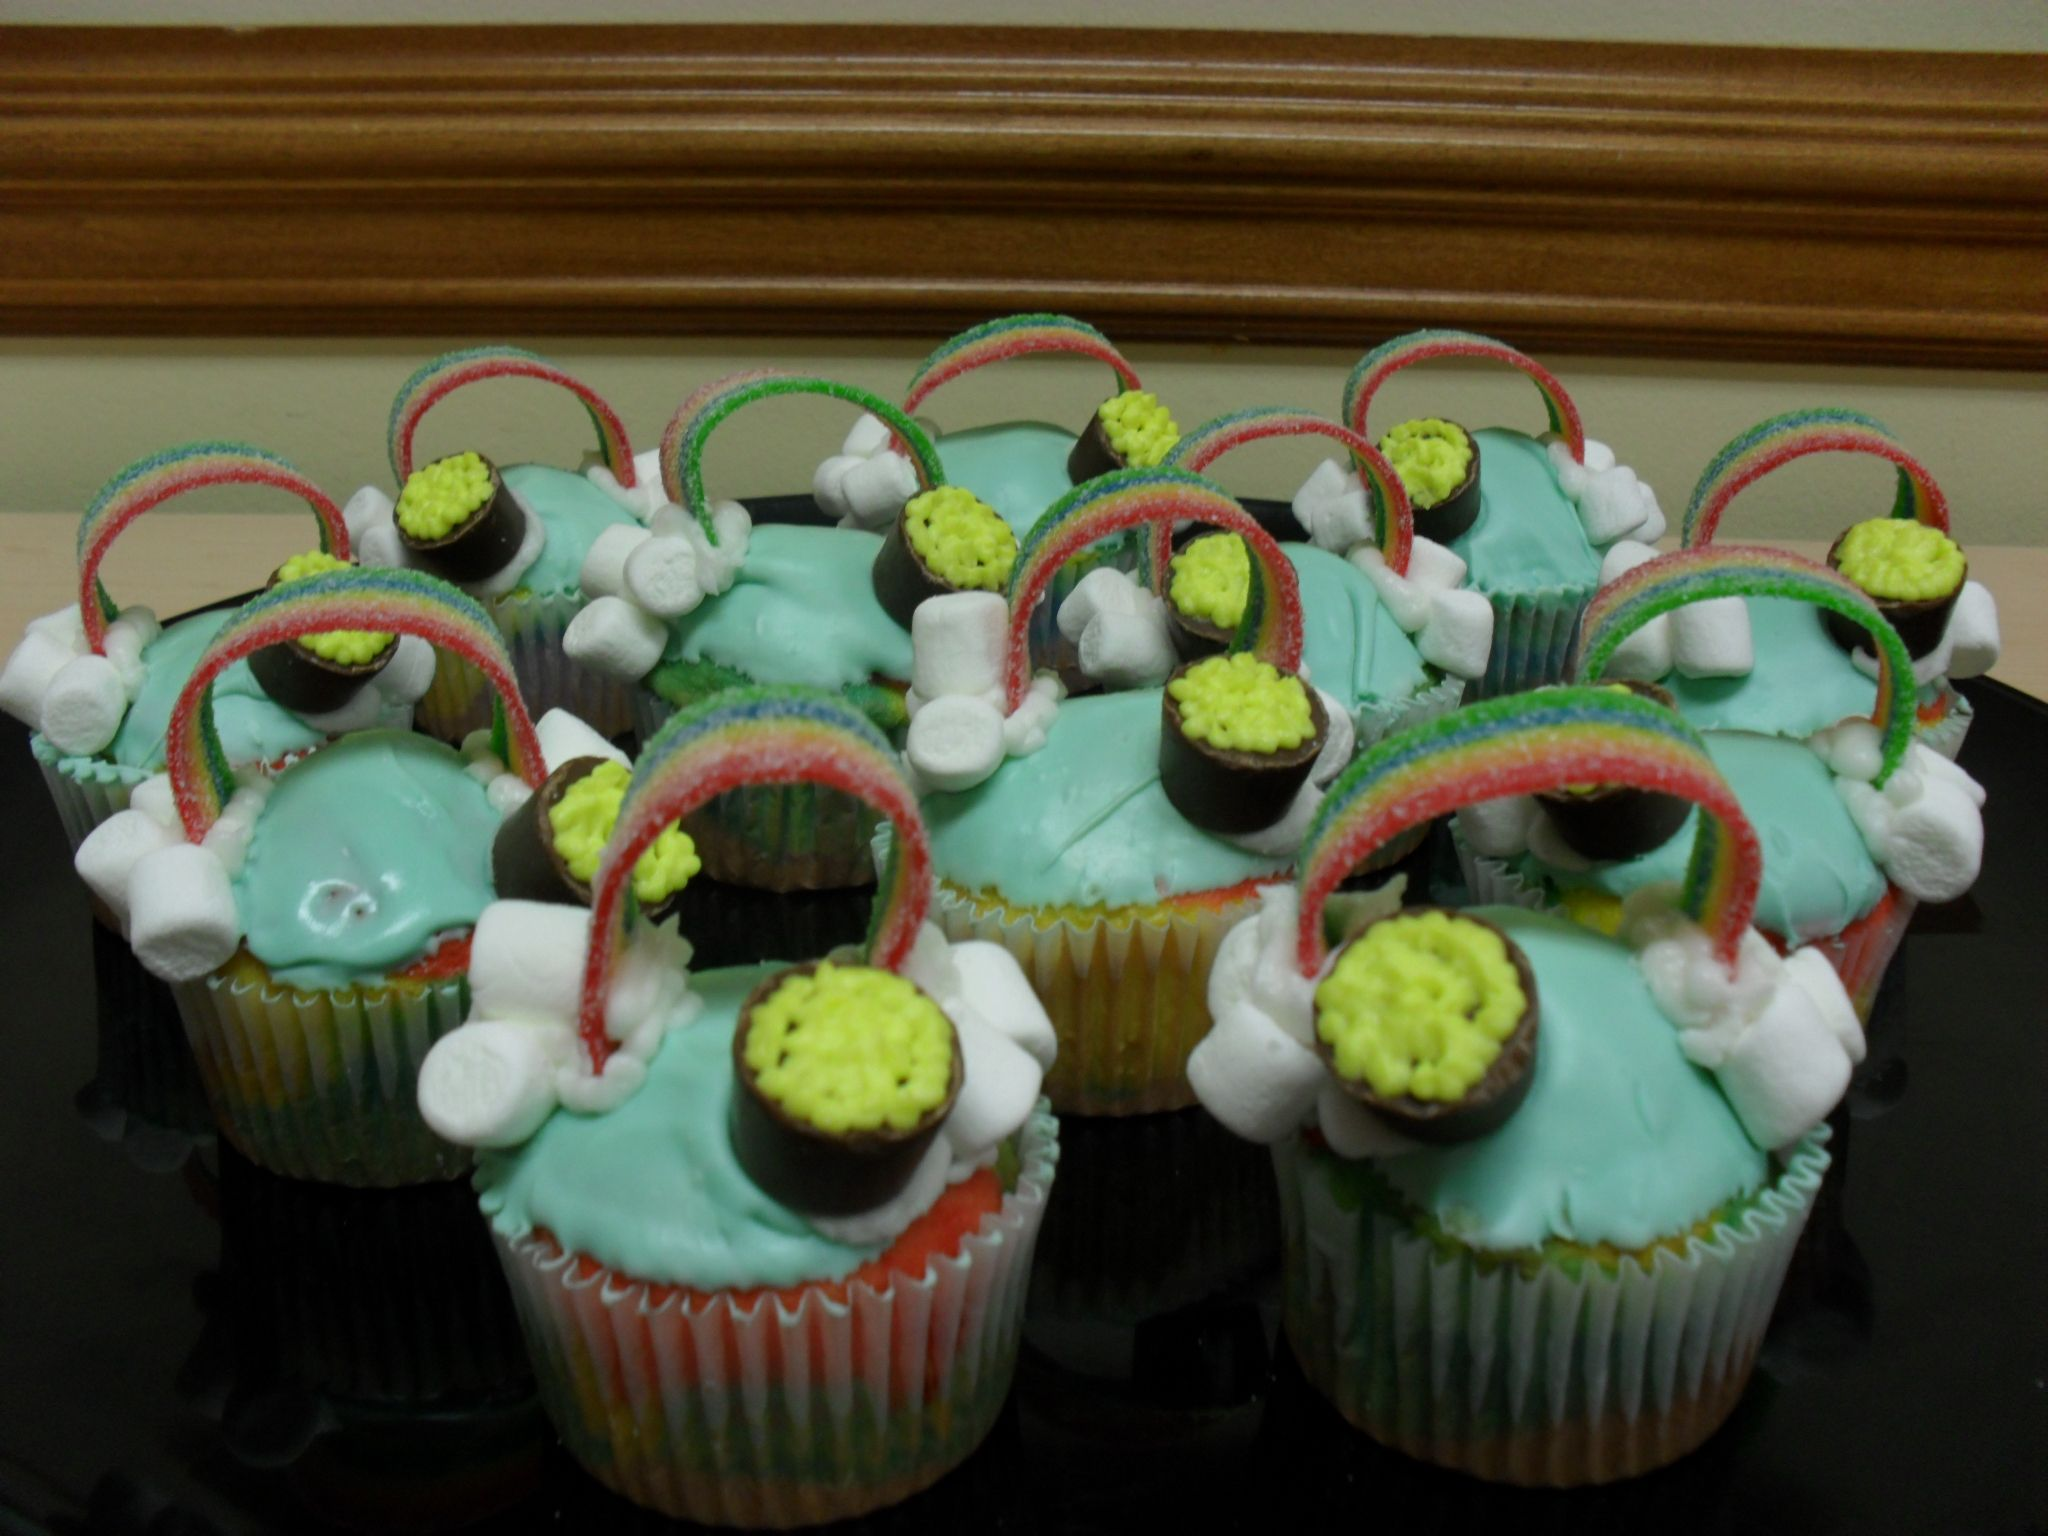 Rainbow cupcakes for St. Patrick's Day!!! And yes... it is rainbow cake underneath!